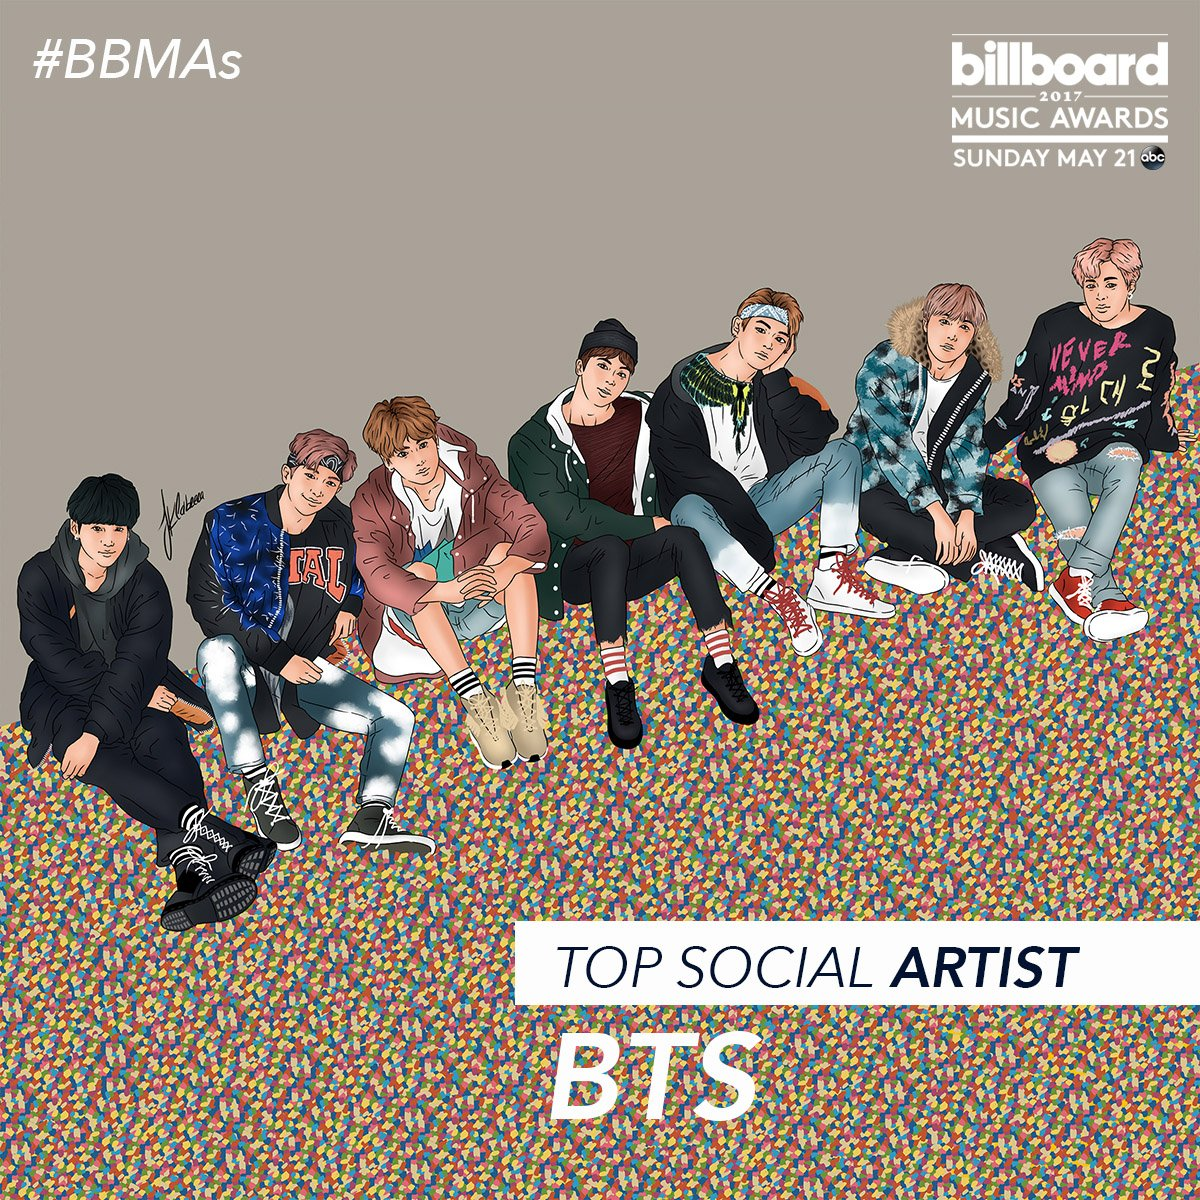 ARMY! 💙 RT to vote for @BTS_twt for Top Social Artist at the #BBMAs. #BTSBBMAs